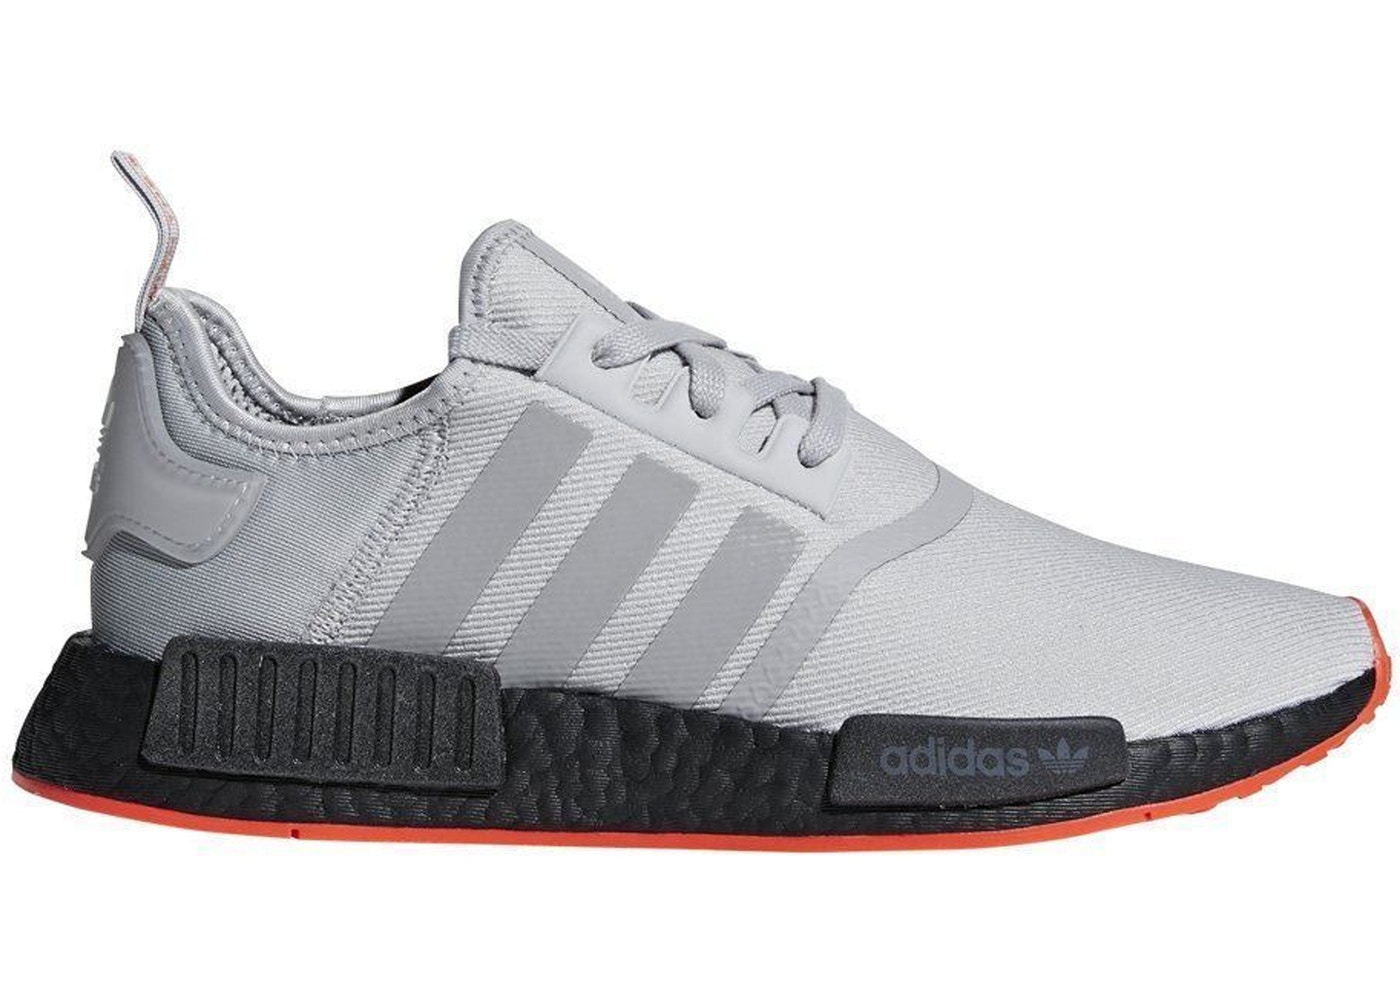 official photos a0b84 bdb30 adidas NMD R1 Grey Solar Red